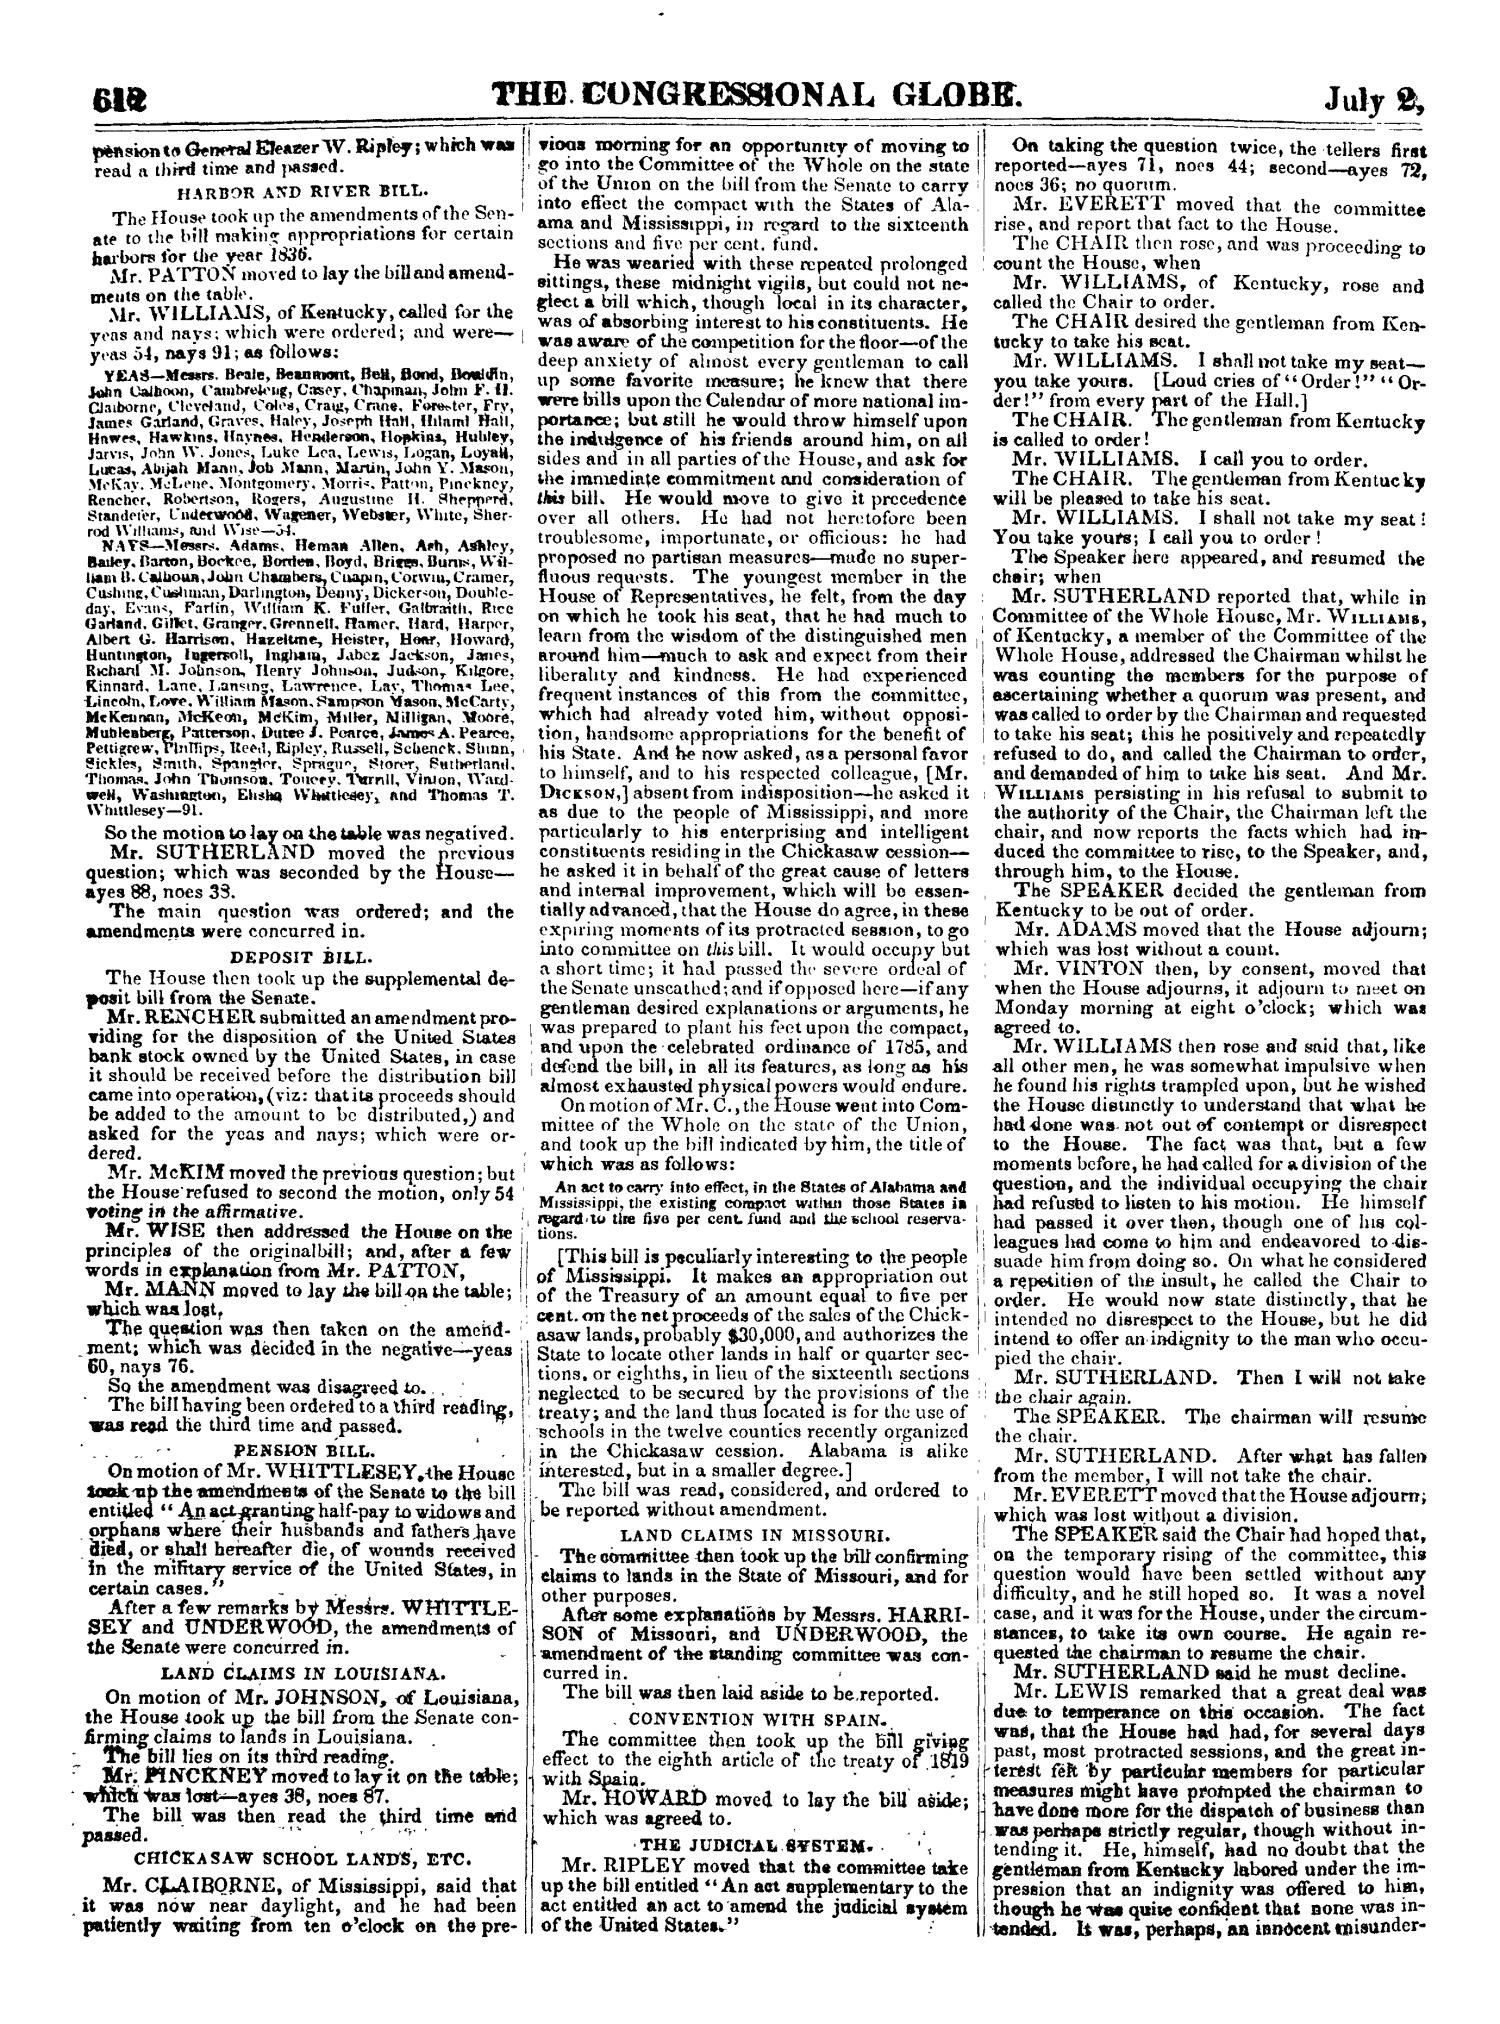 The Congressional Globe, Volume 2-3: Twenty-Fourth Congress, First Session                                                                                                      612